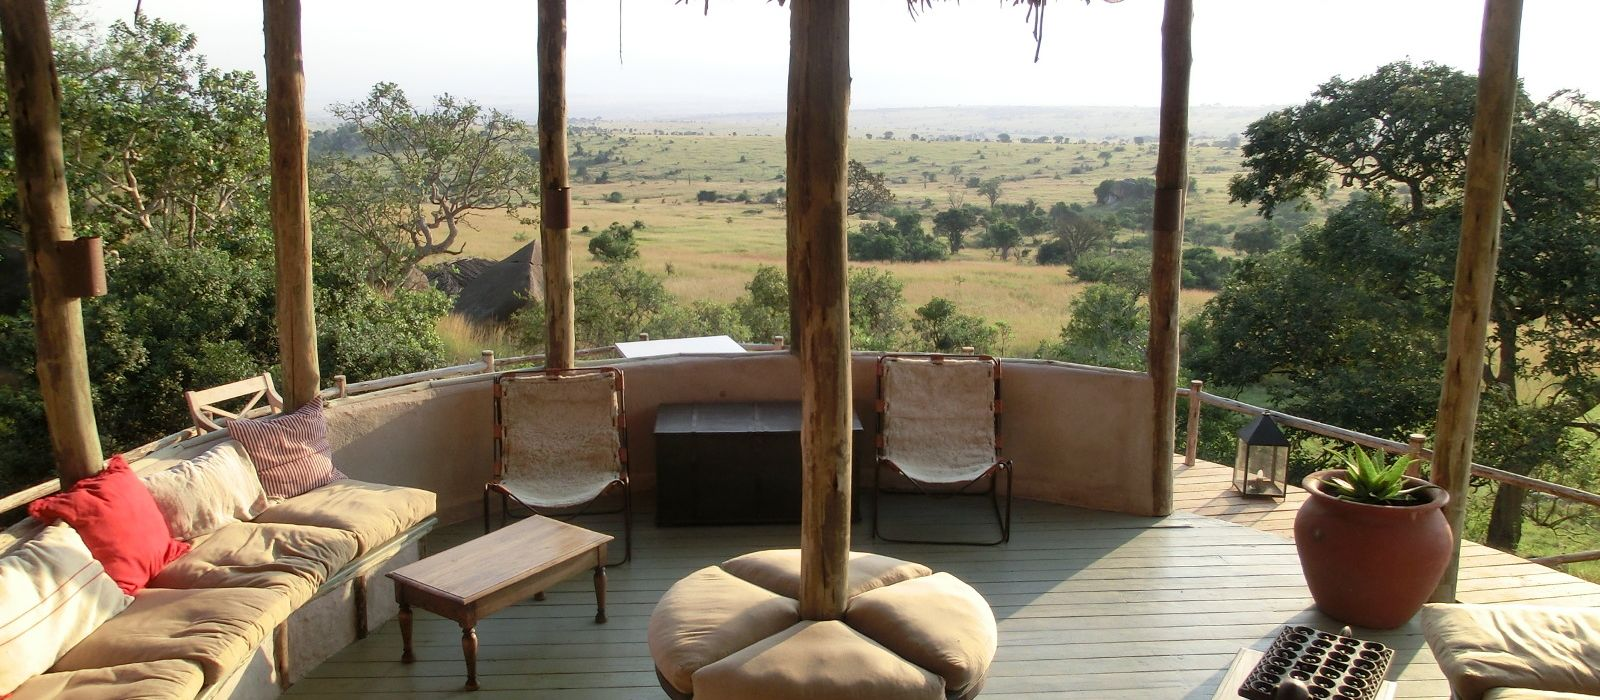 Hotel Lamai Serengeti Private Camp Tansania